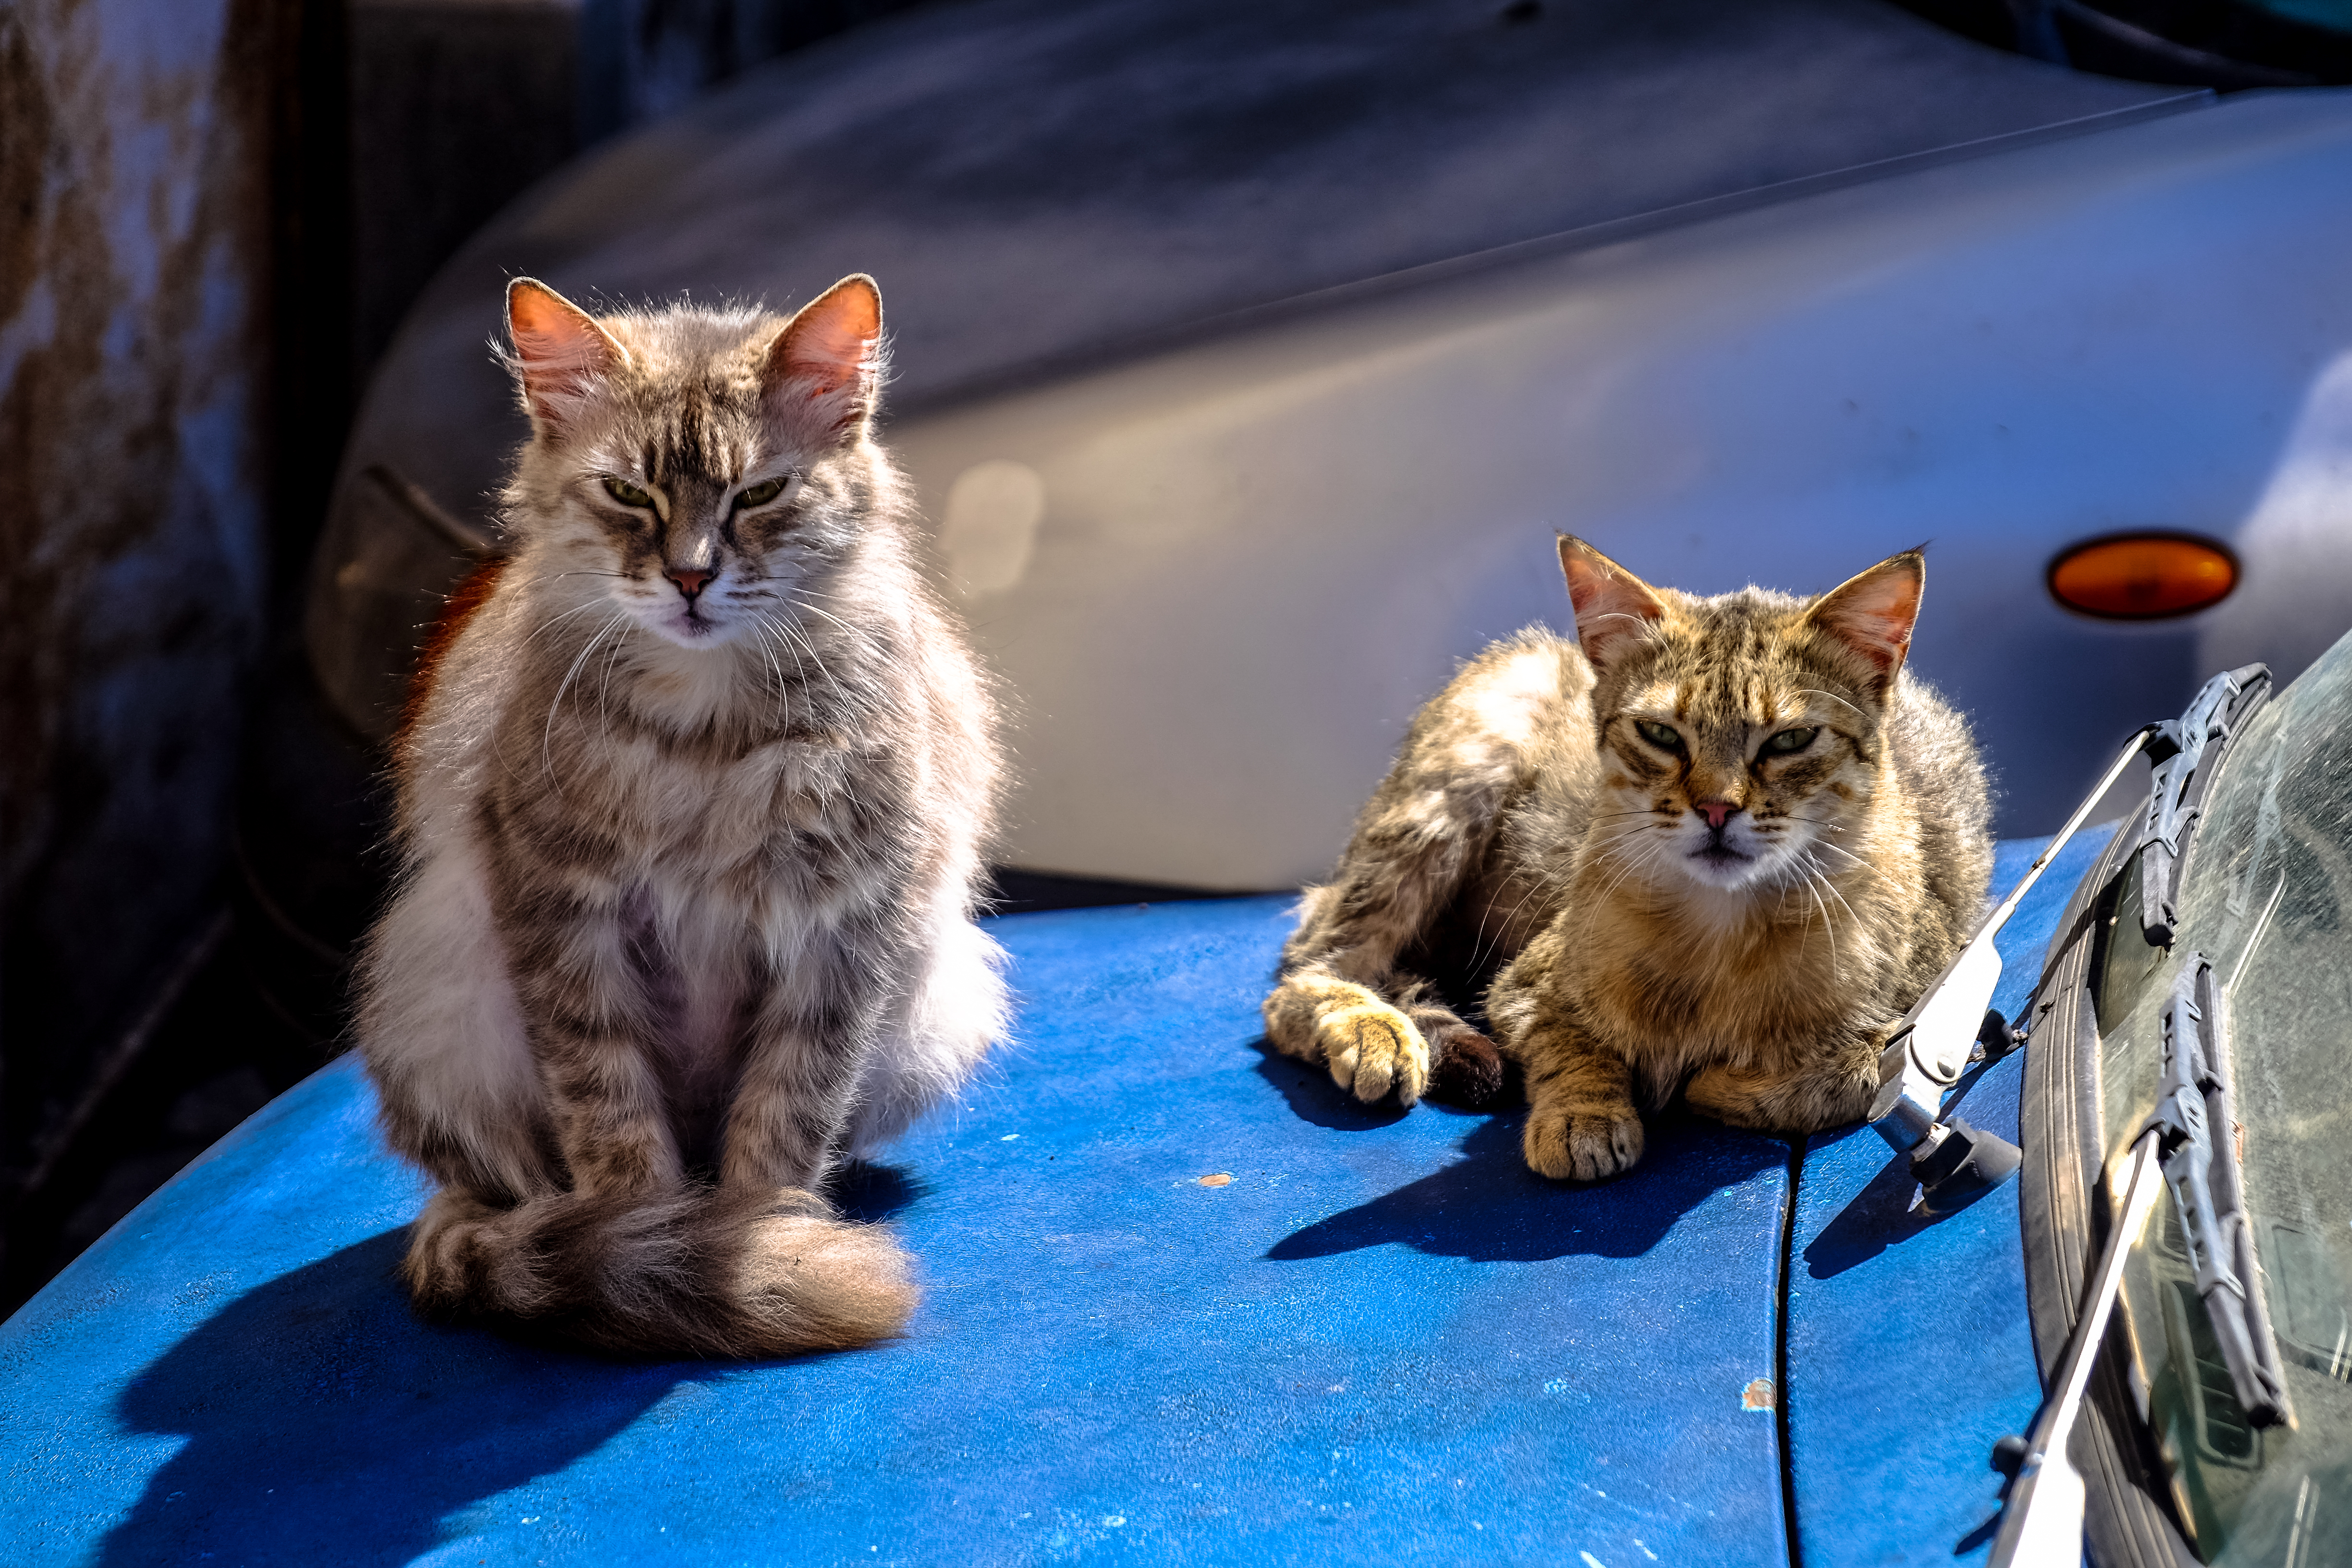 Tortoiseshell Cat With Brown Maine Coon Cat · Free Stock